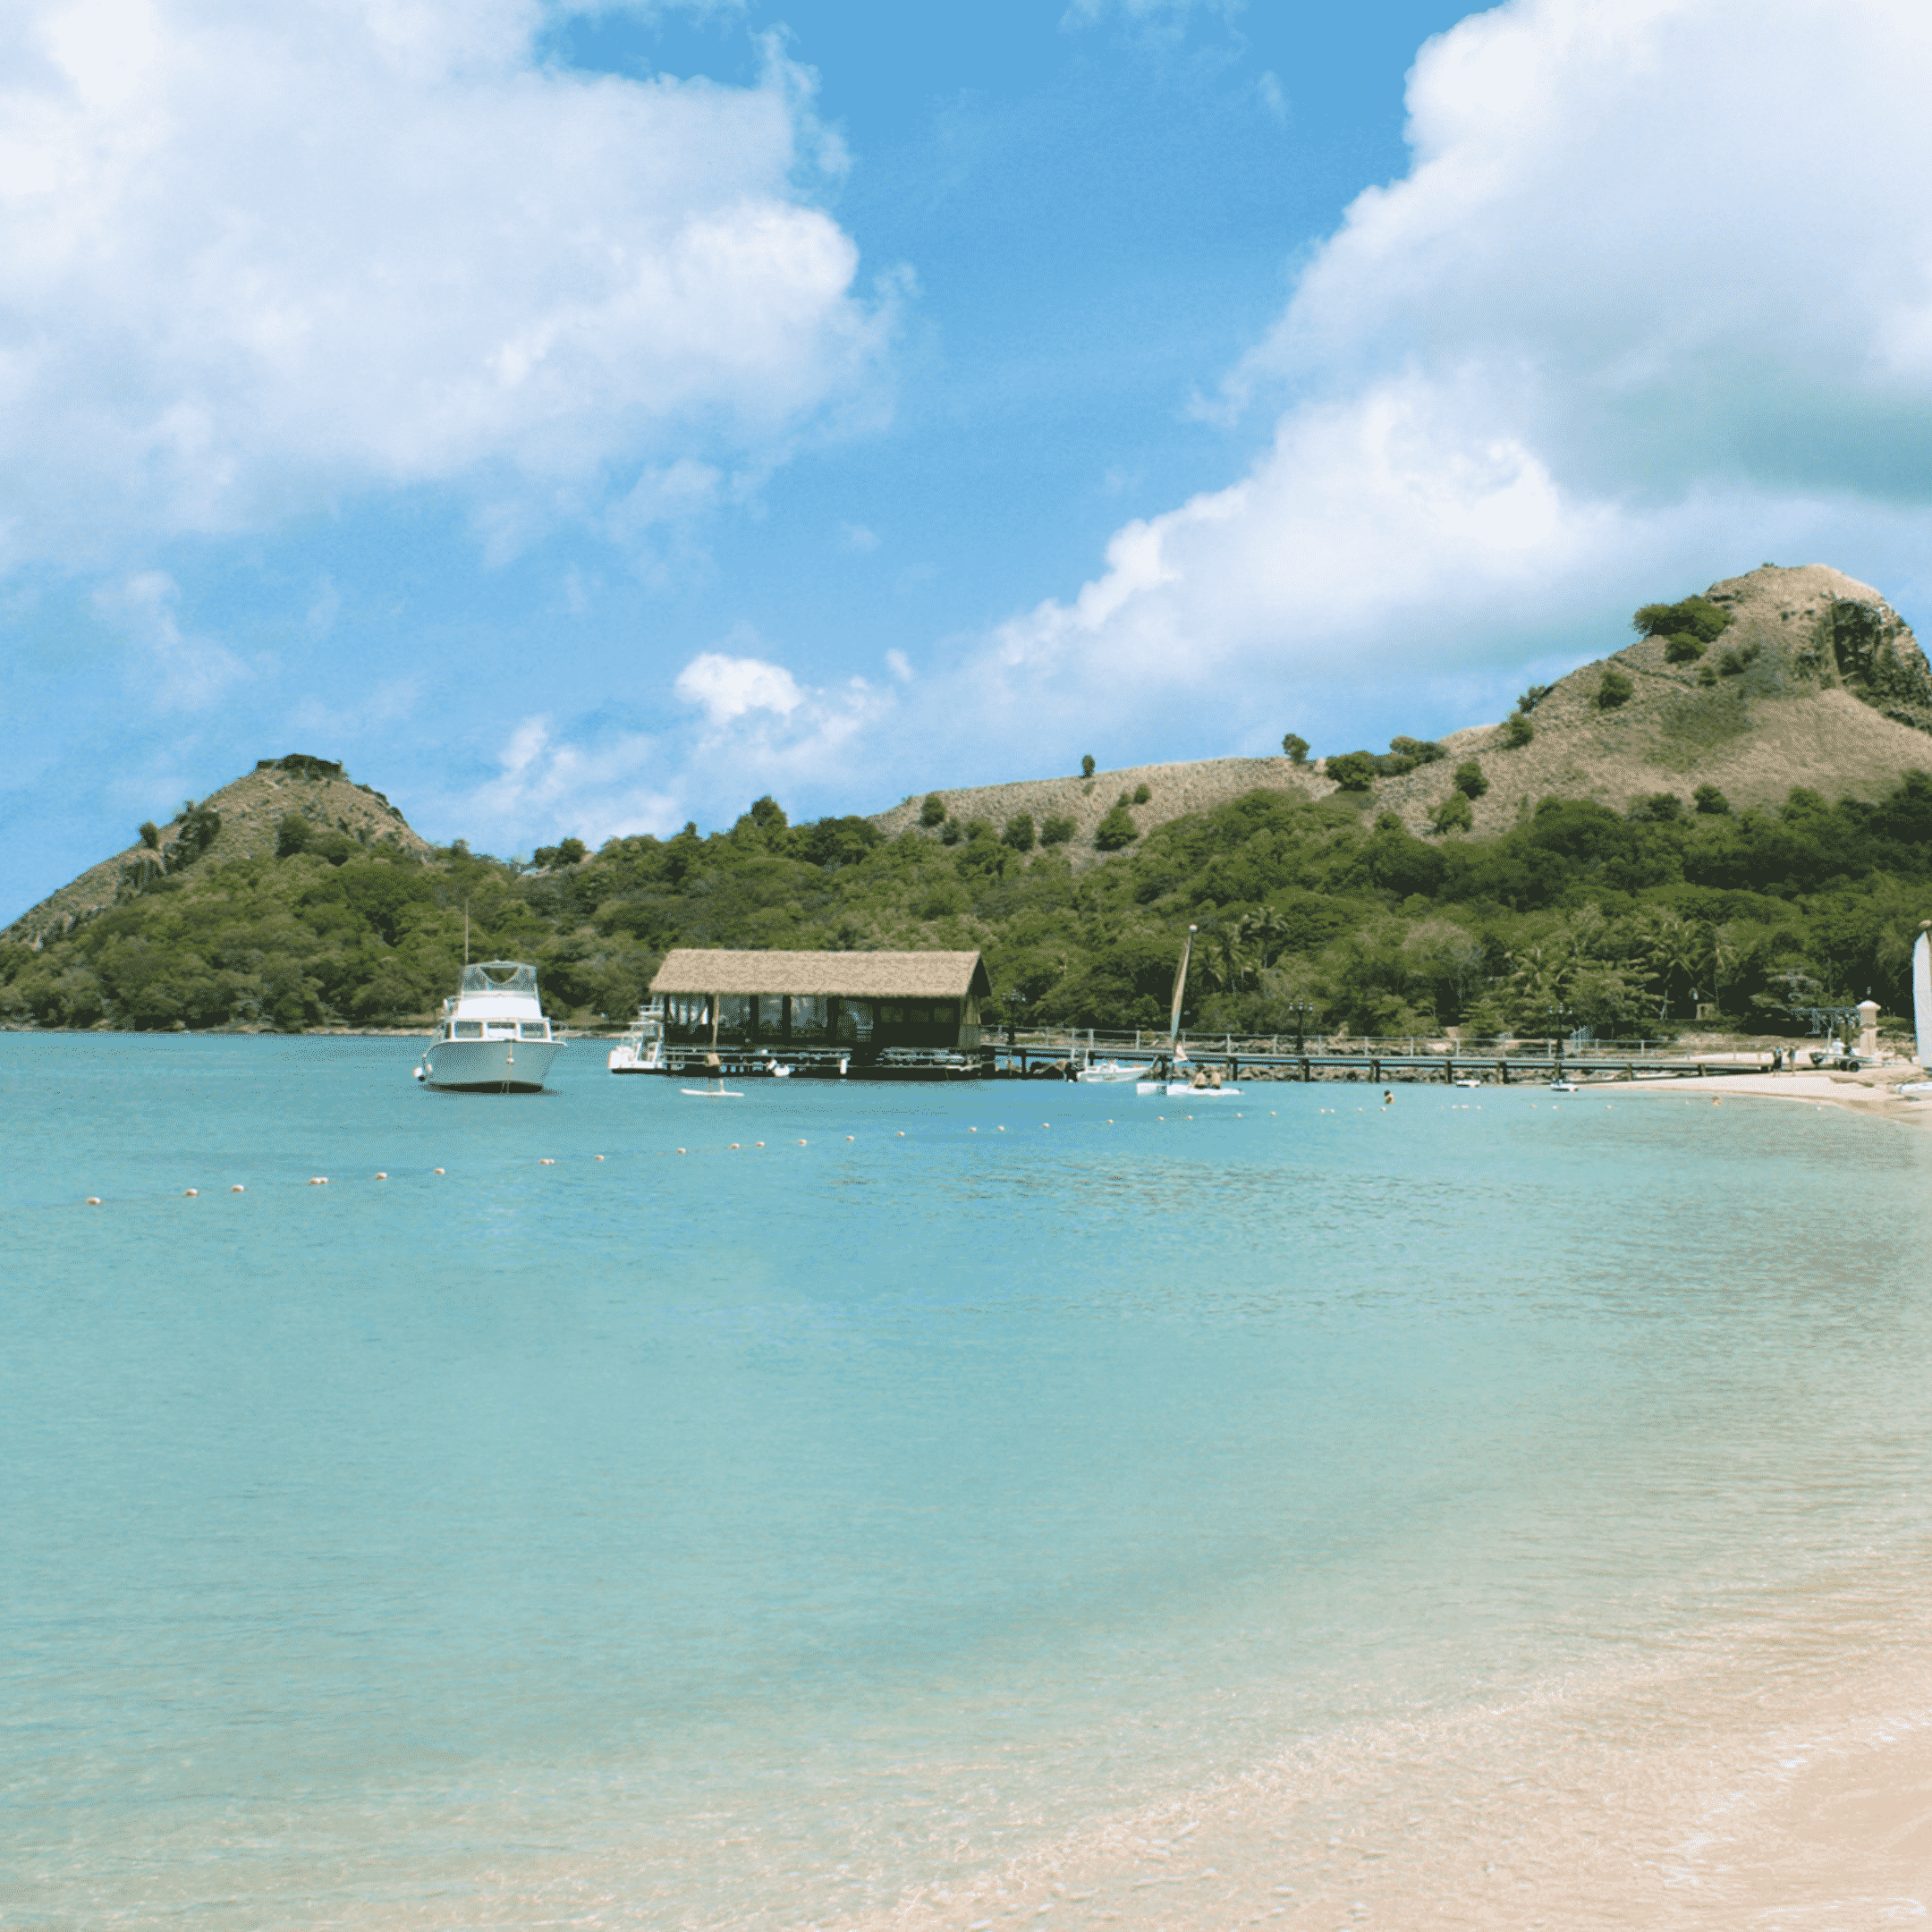 25 places to visit before turning 25 | St Lucia